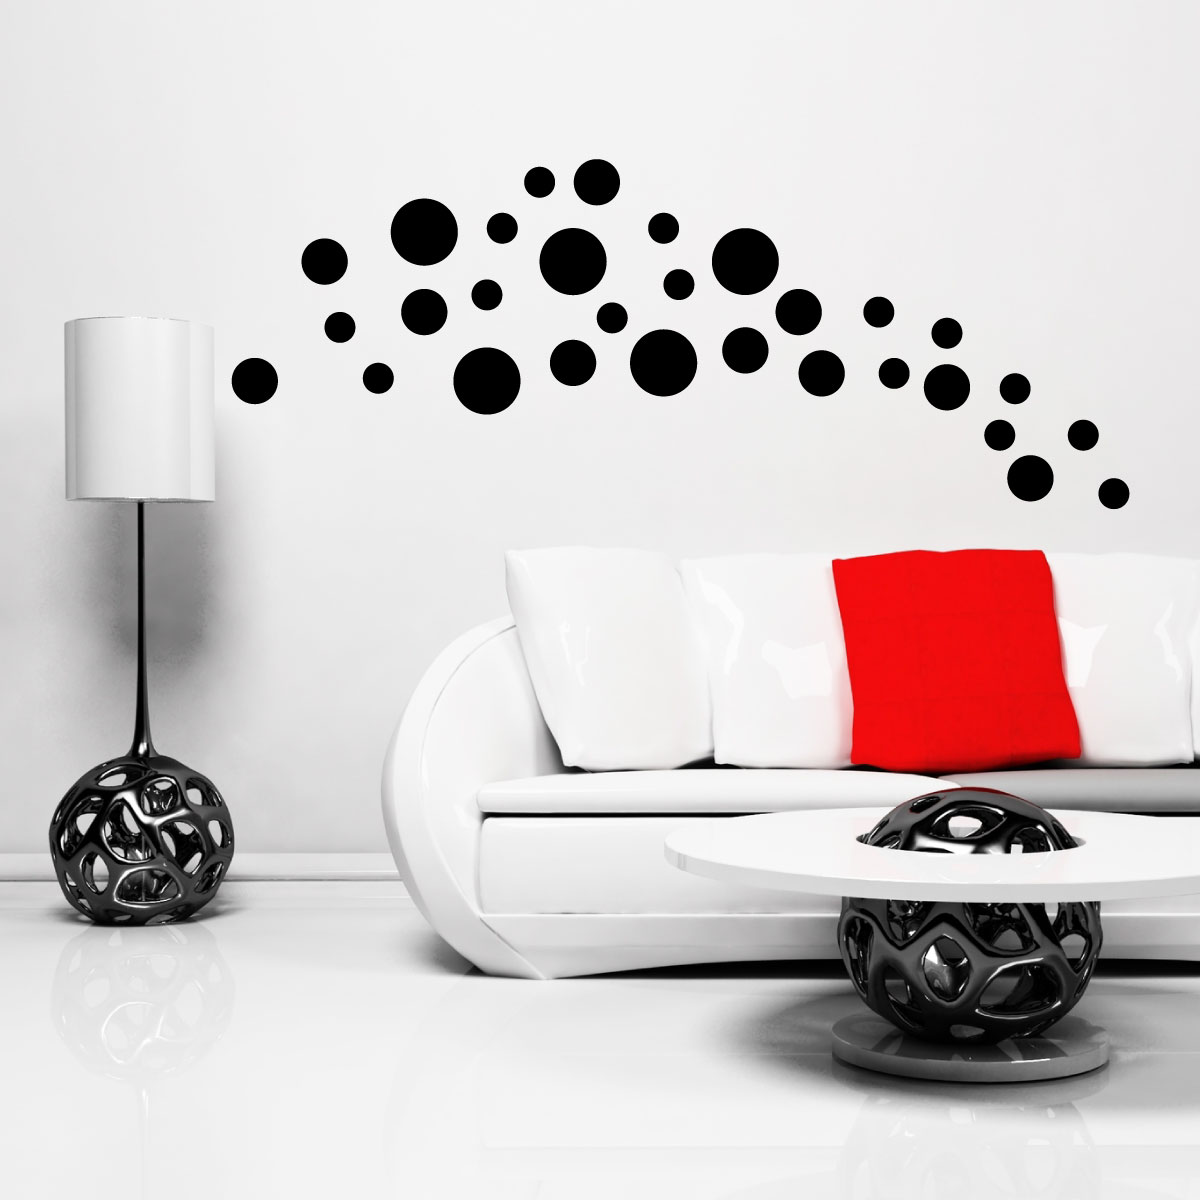 stickers muraux design sticker mural 30 points en 3 tailles ambiance. Black Bedroom Furniture Sets. Home Design Ideas